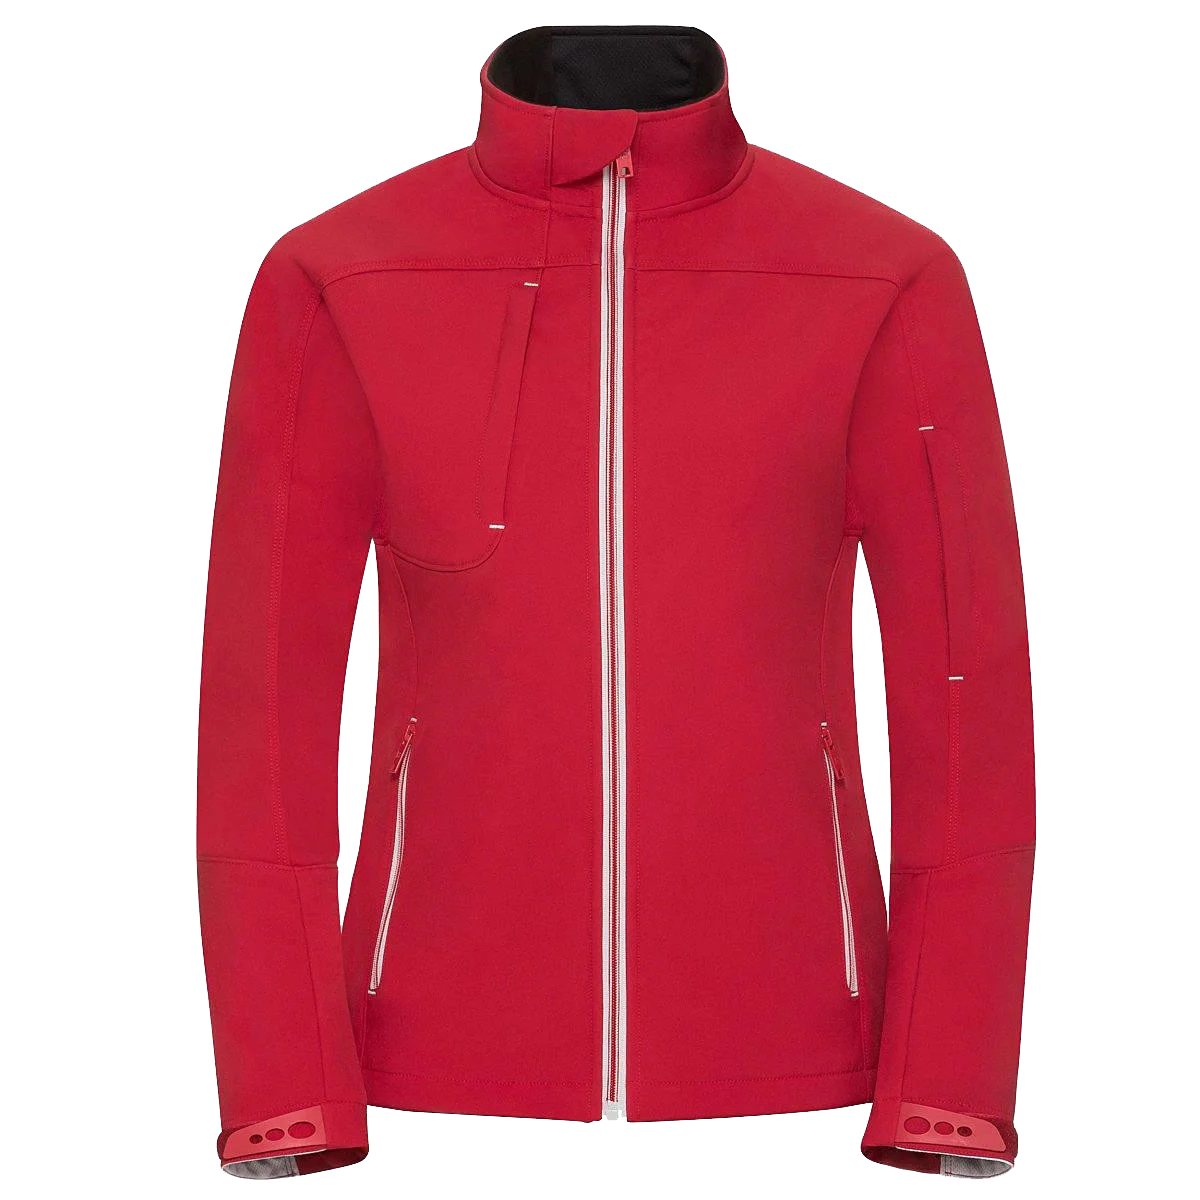 Russell Women/Ladies Bionic Softshell Jacket (L) (Classic Red)